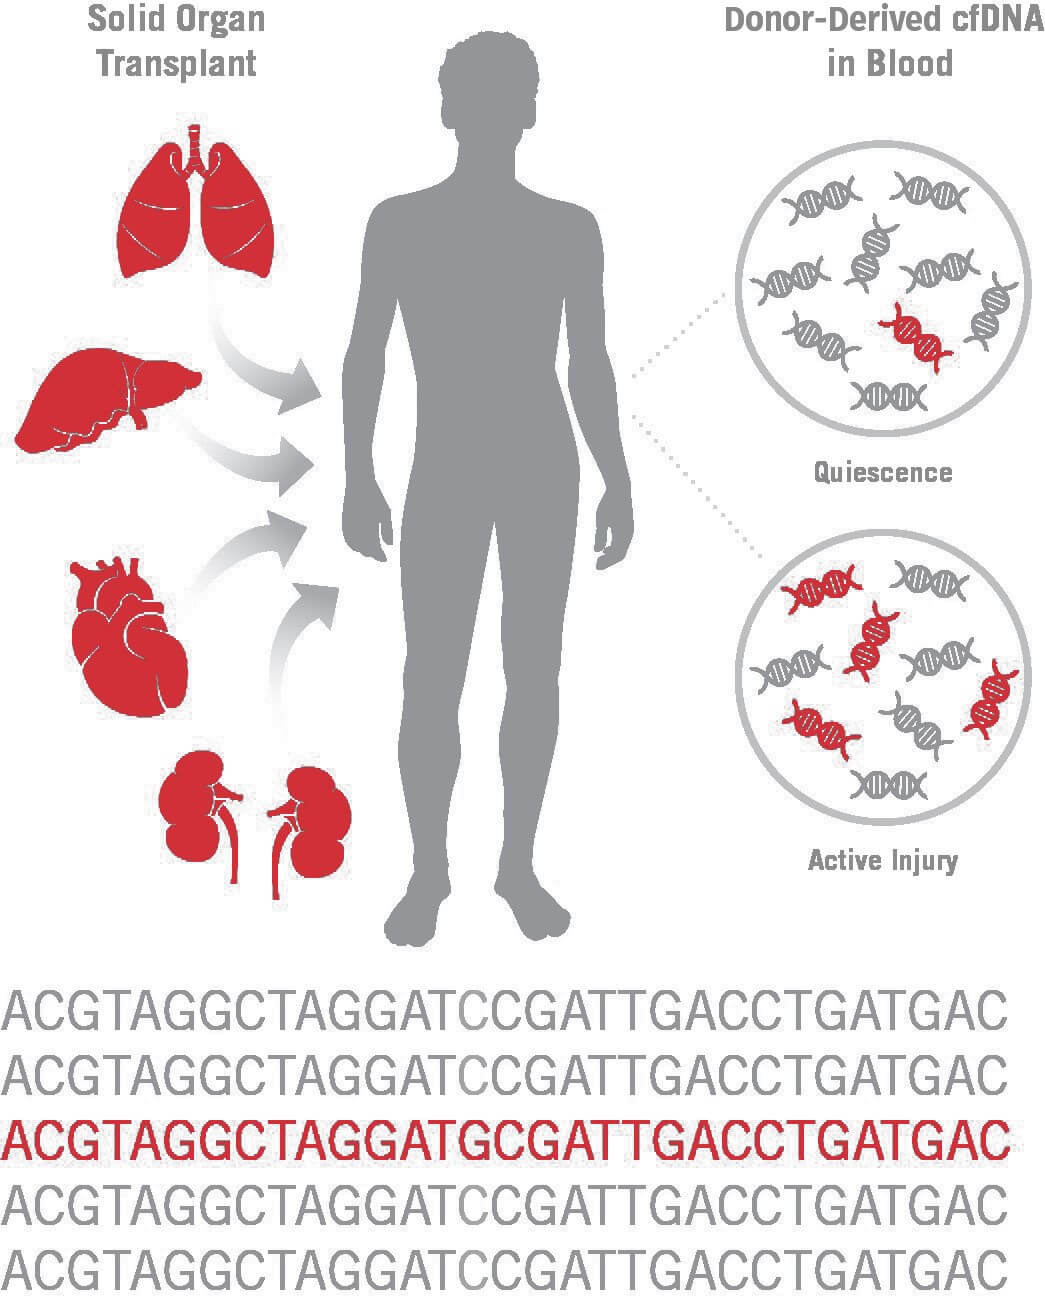 In solid organ transplant recipients, analysis of circulating cell-free DNA (cfDNA) offers advantages over invasive tissue biopsies for detection of rejection and immunotherapy surveillance. A by-product of cell death, cfDNA can be used to assess allograft injury by measuring donor-derived cfDNA (dd-cfDNA) against the background of recipient cfDNA. dd-cfDNA is quantified by analytically validated clinical-grade next-generation sequencing assay utilizing single nucleotide polymorphisms distributed across the genome to differentiate donor and recipient cfDNA. Credit: CareDx, Inc.